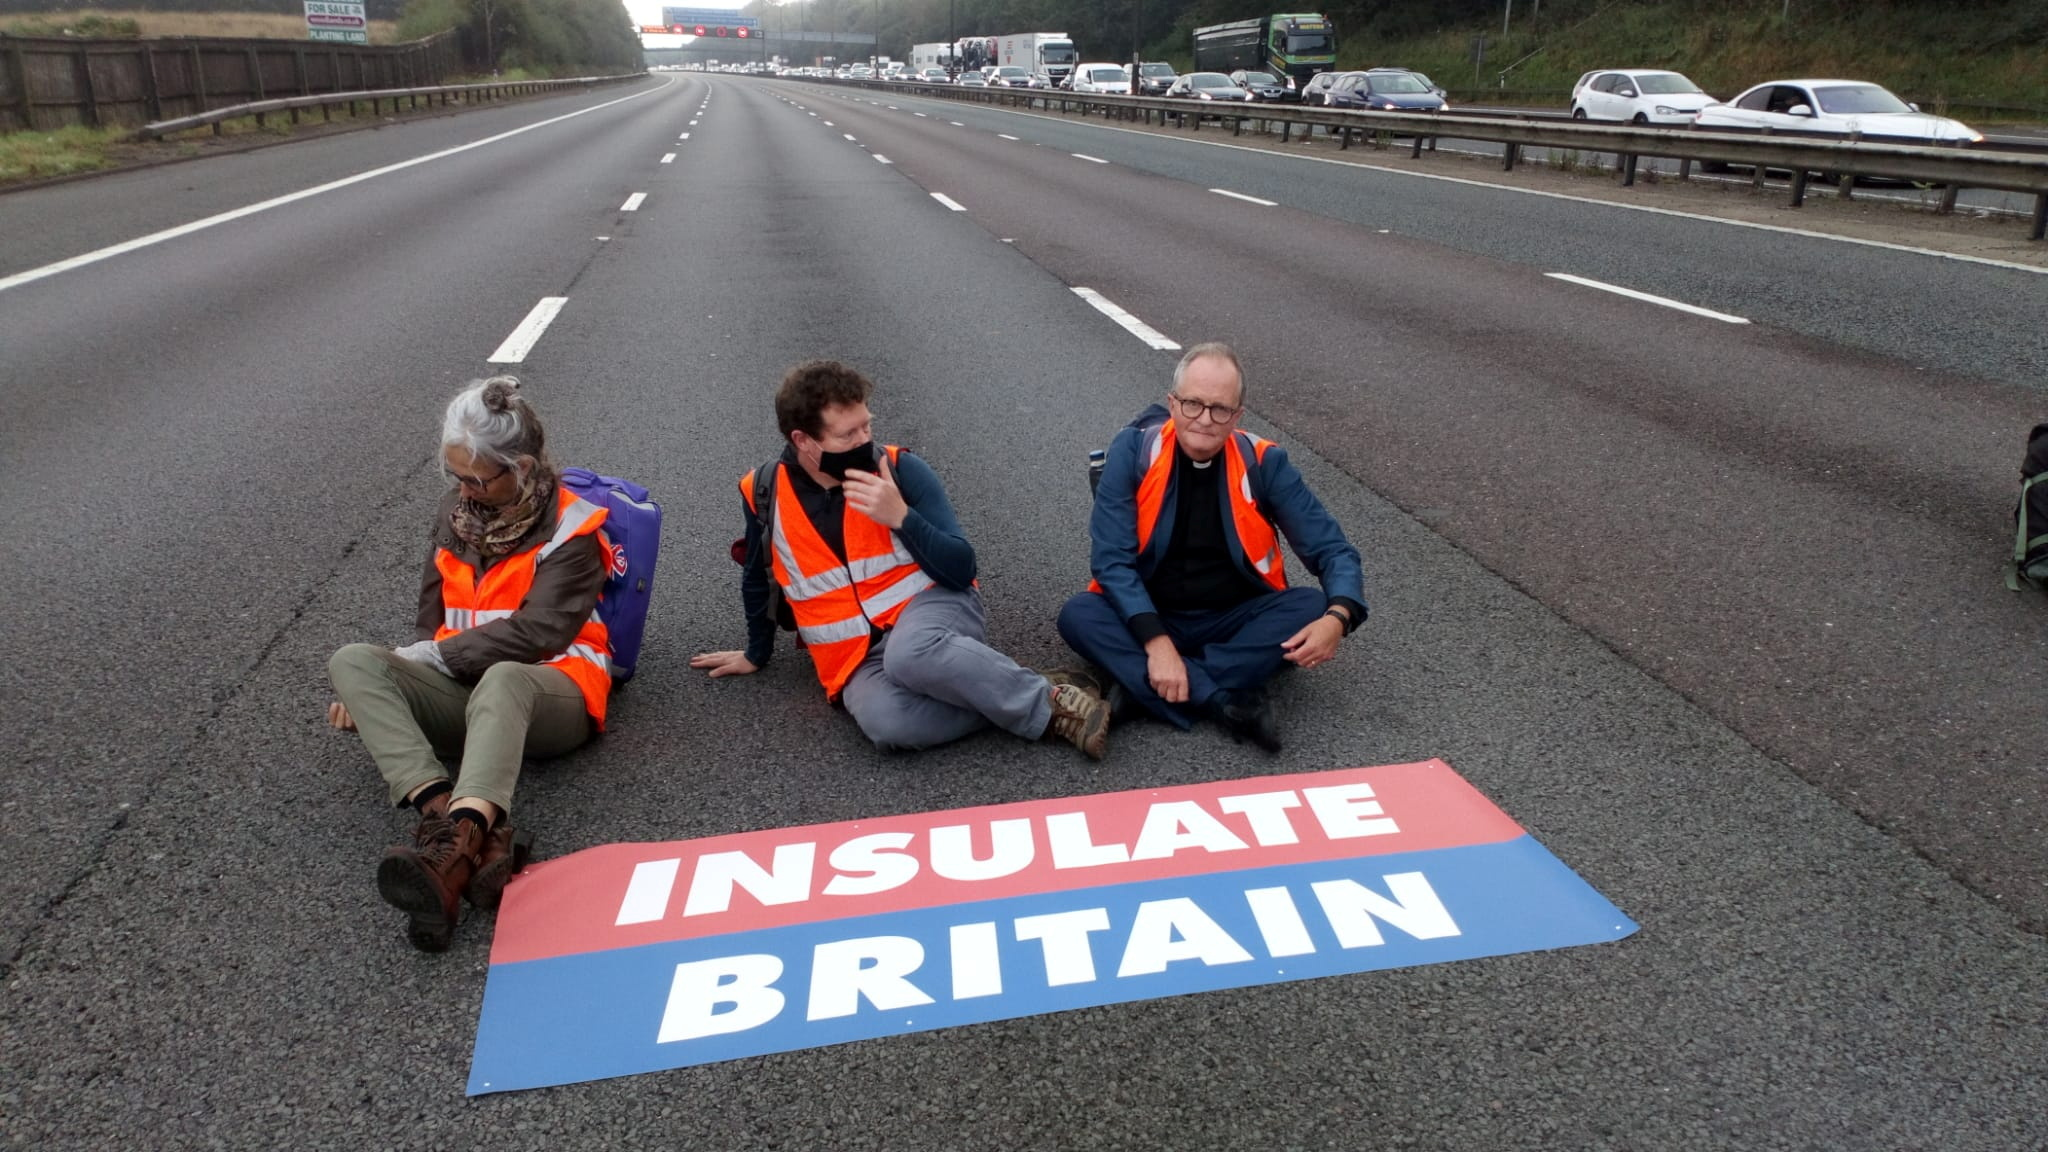 Members of Insulate Britain protest on M25 Motorway, Britain September 15, 2021. Insulate Britain/Handout via REUTERS